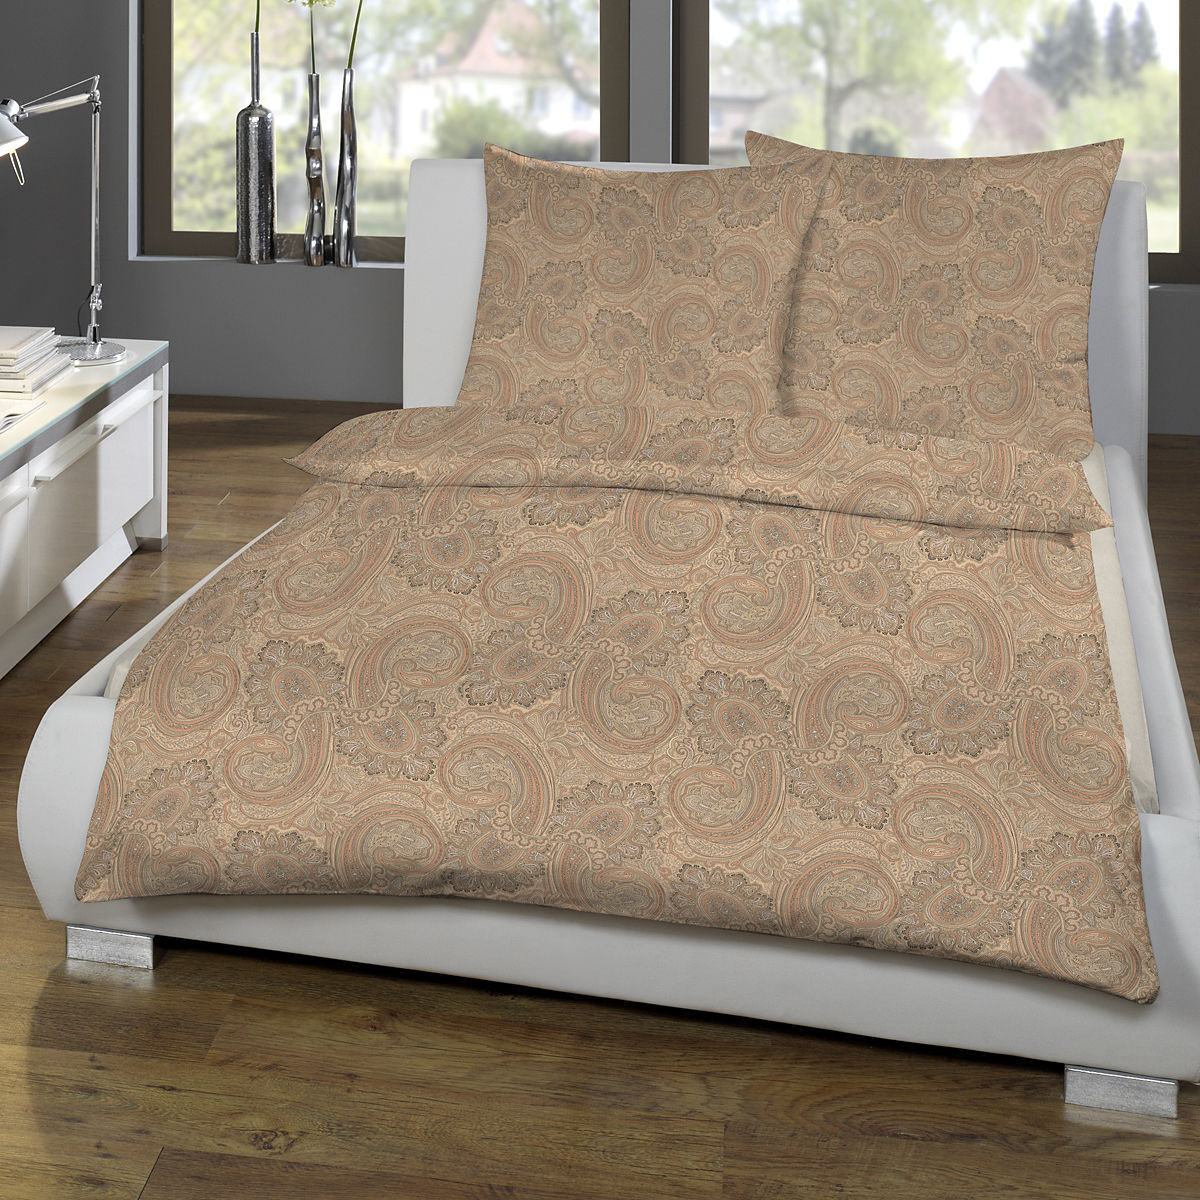 estella jersey bettw sche paisley 3 teilig lachs 135x200 cm karstadt online shop. Black Bedroom Furniture Sets. Home Design Ideas